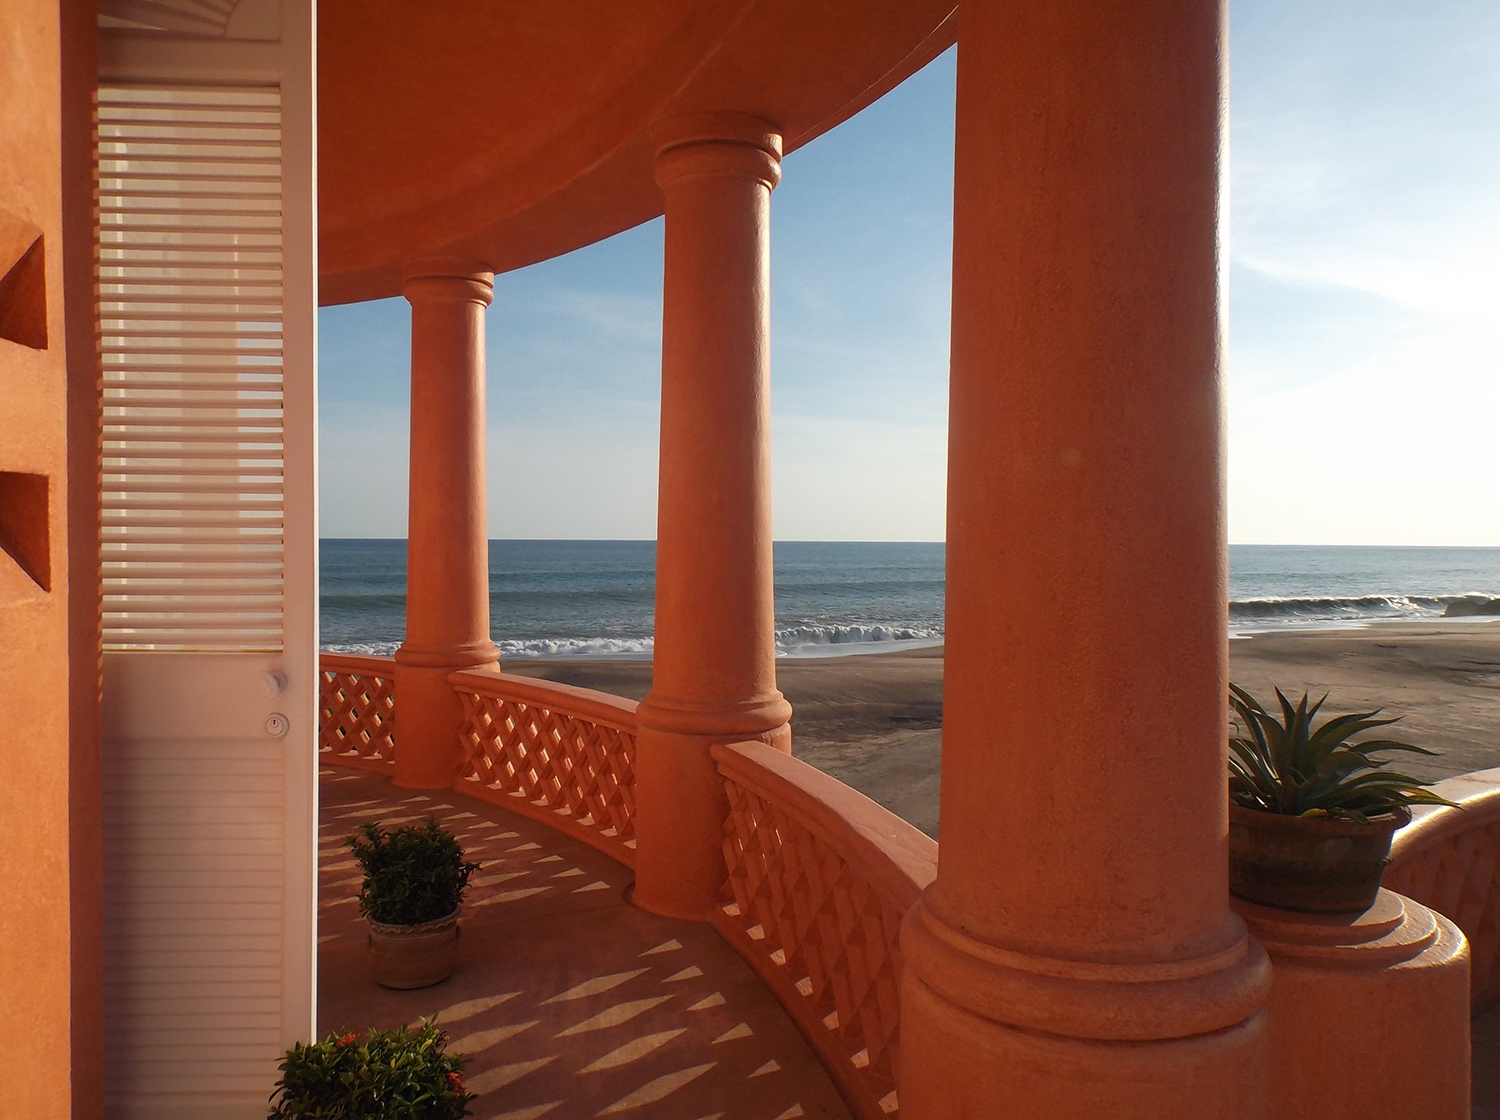 The view of the nearby ocean and large columns from the balcony at Casa Playa